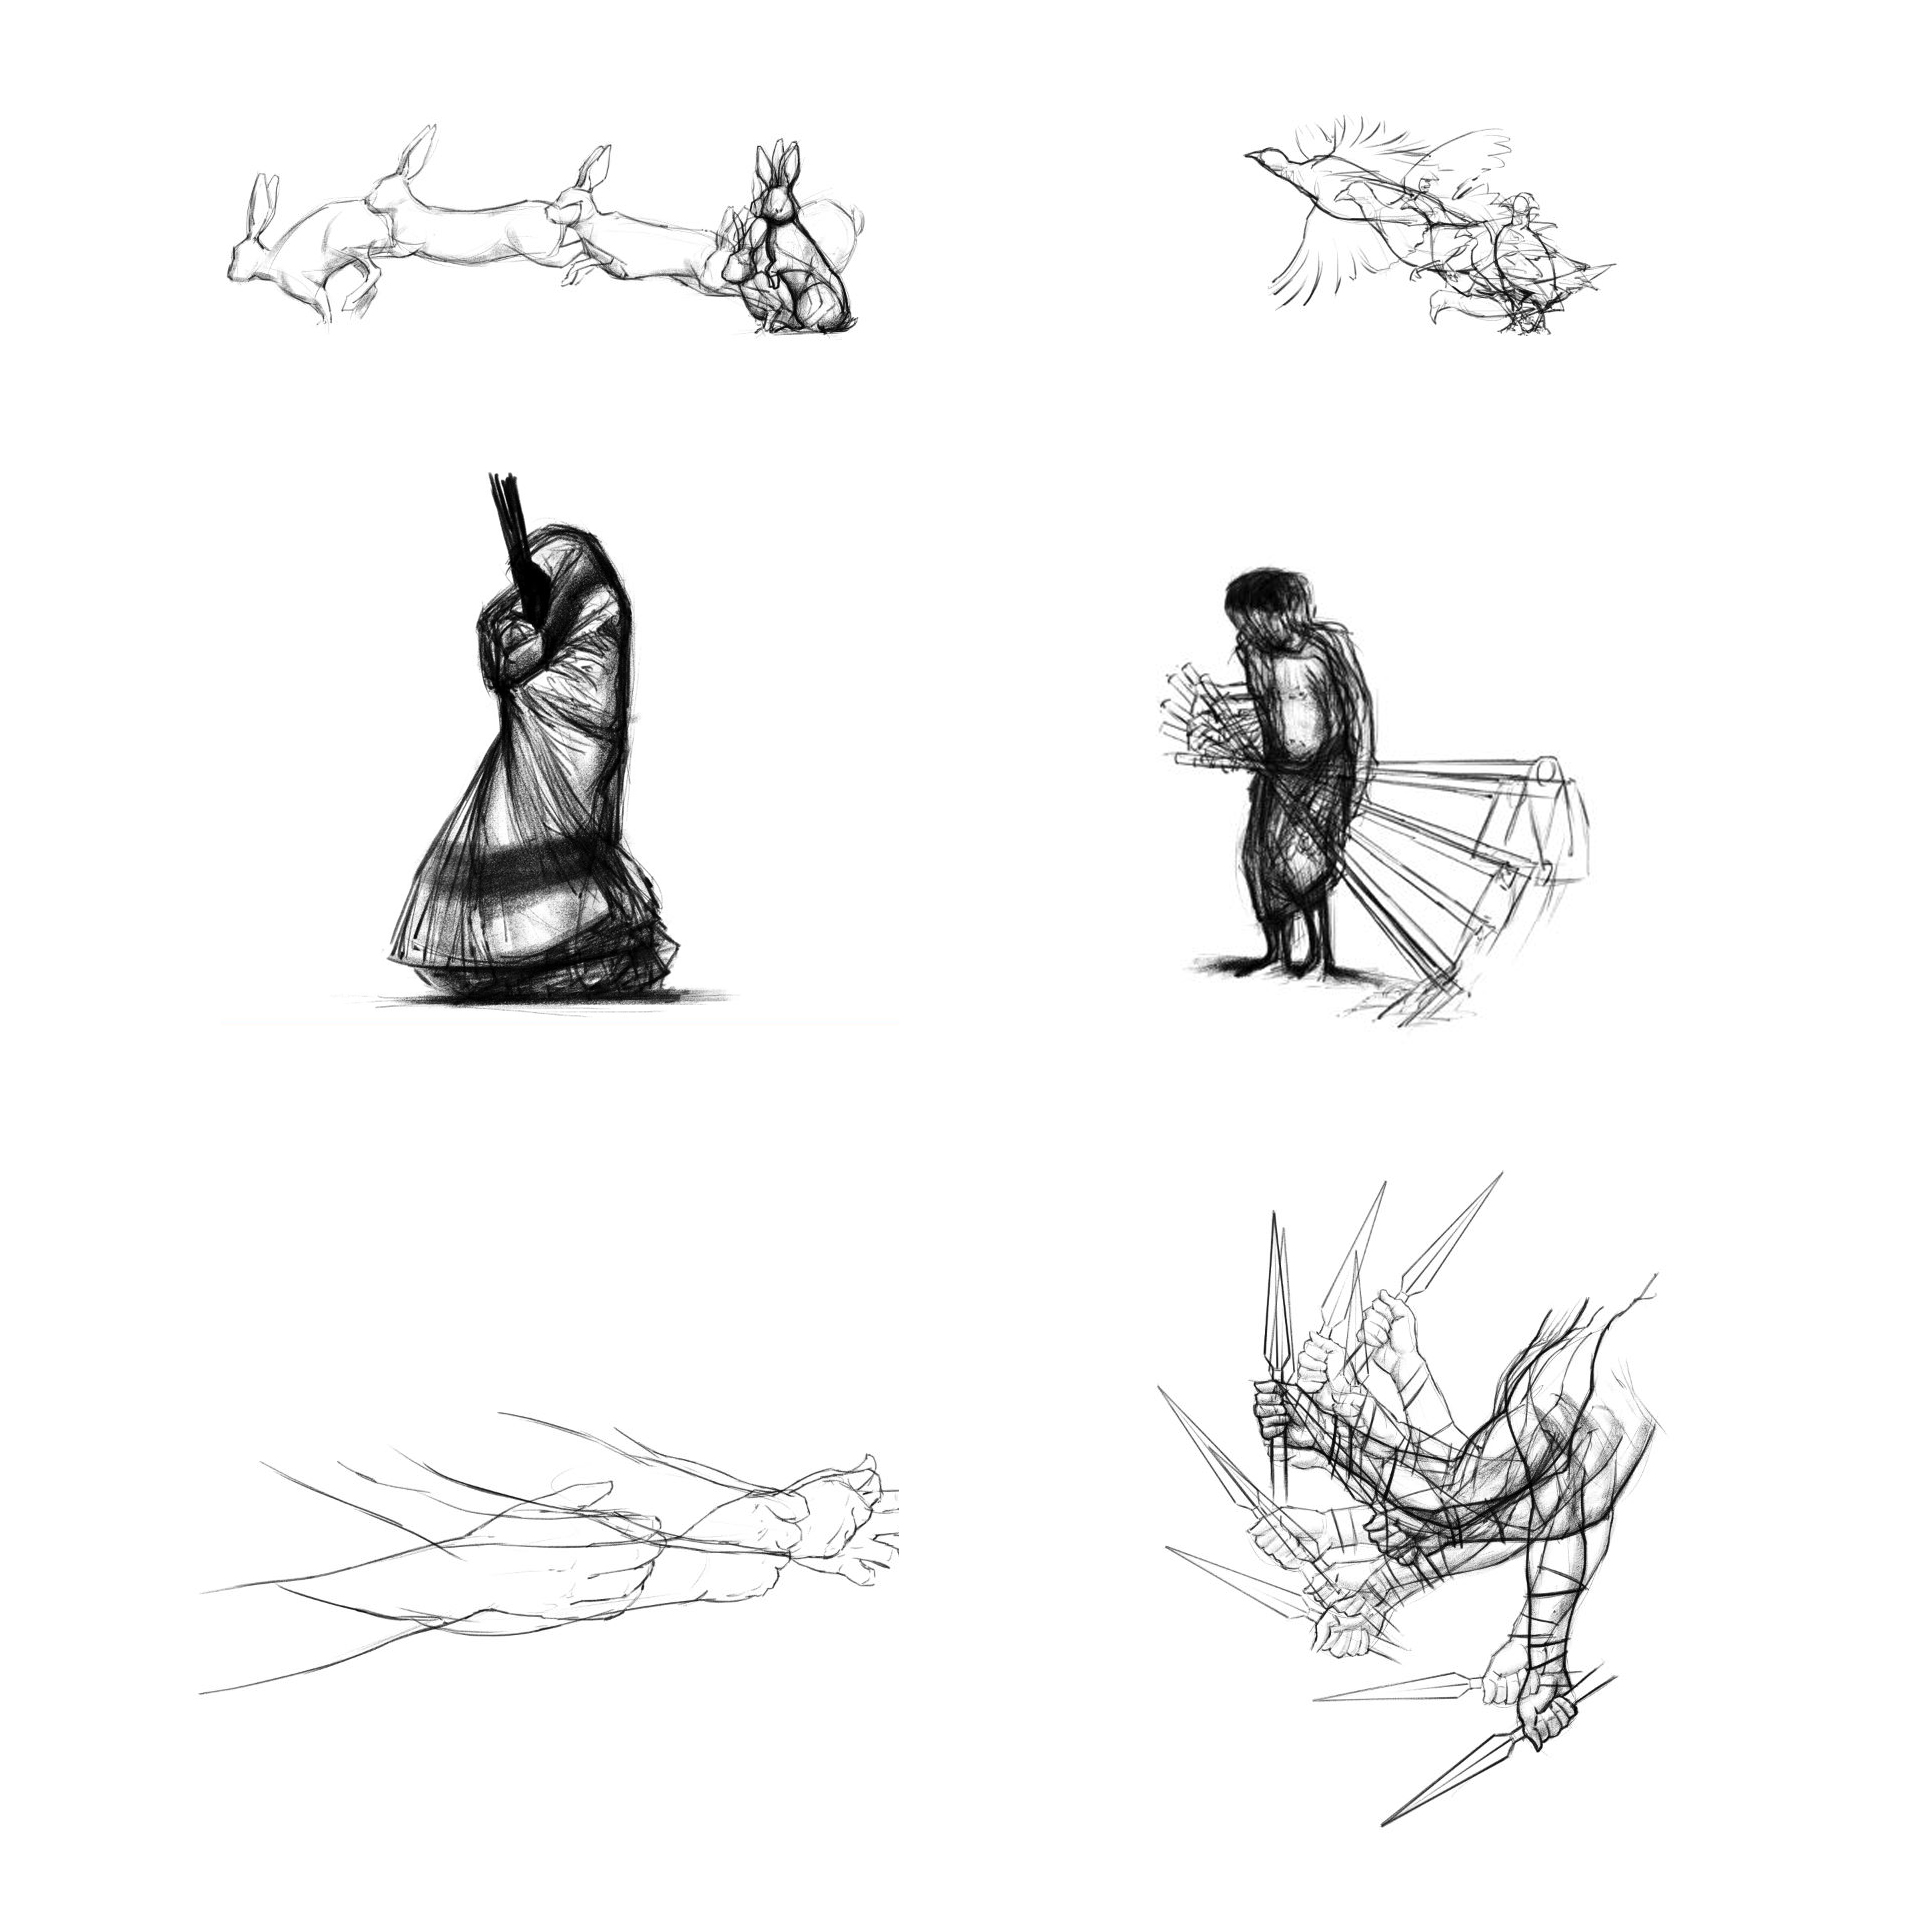 Frames from sketch animations 'layered' up.